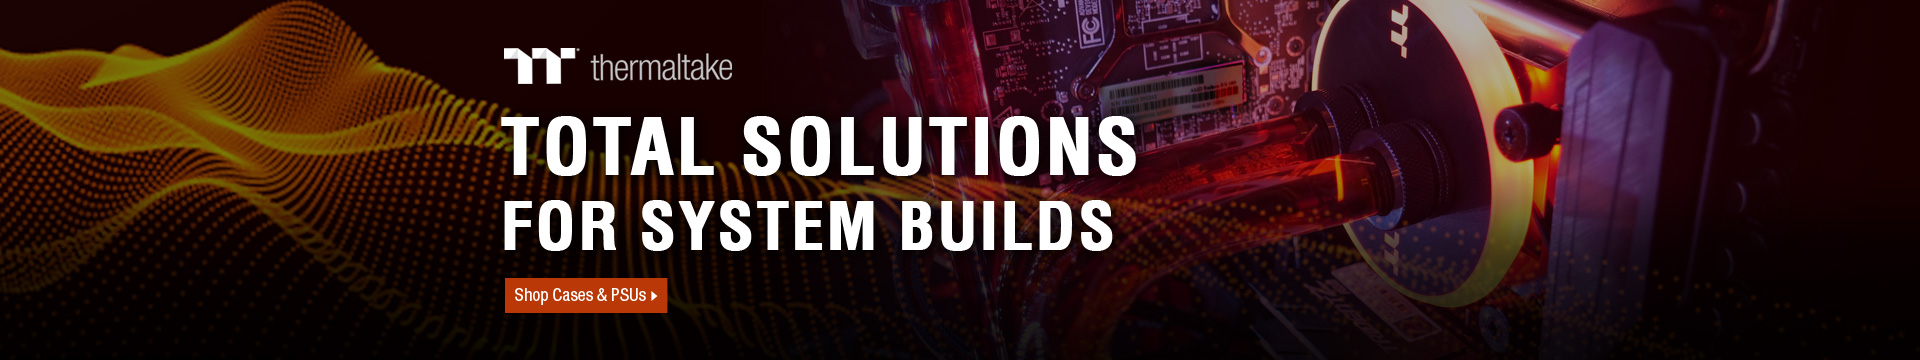 Total Solutions for System Builds